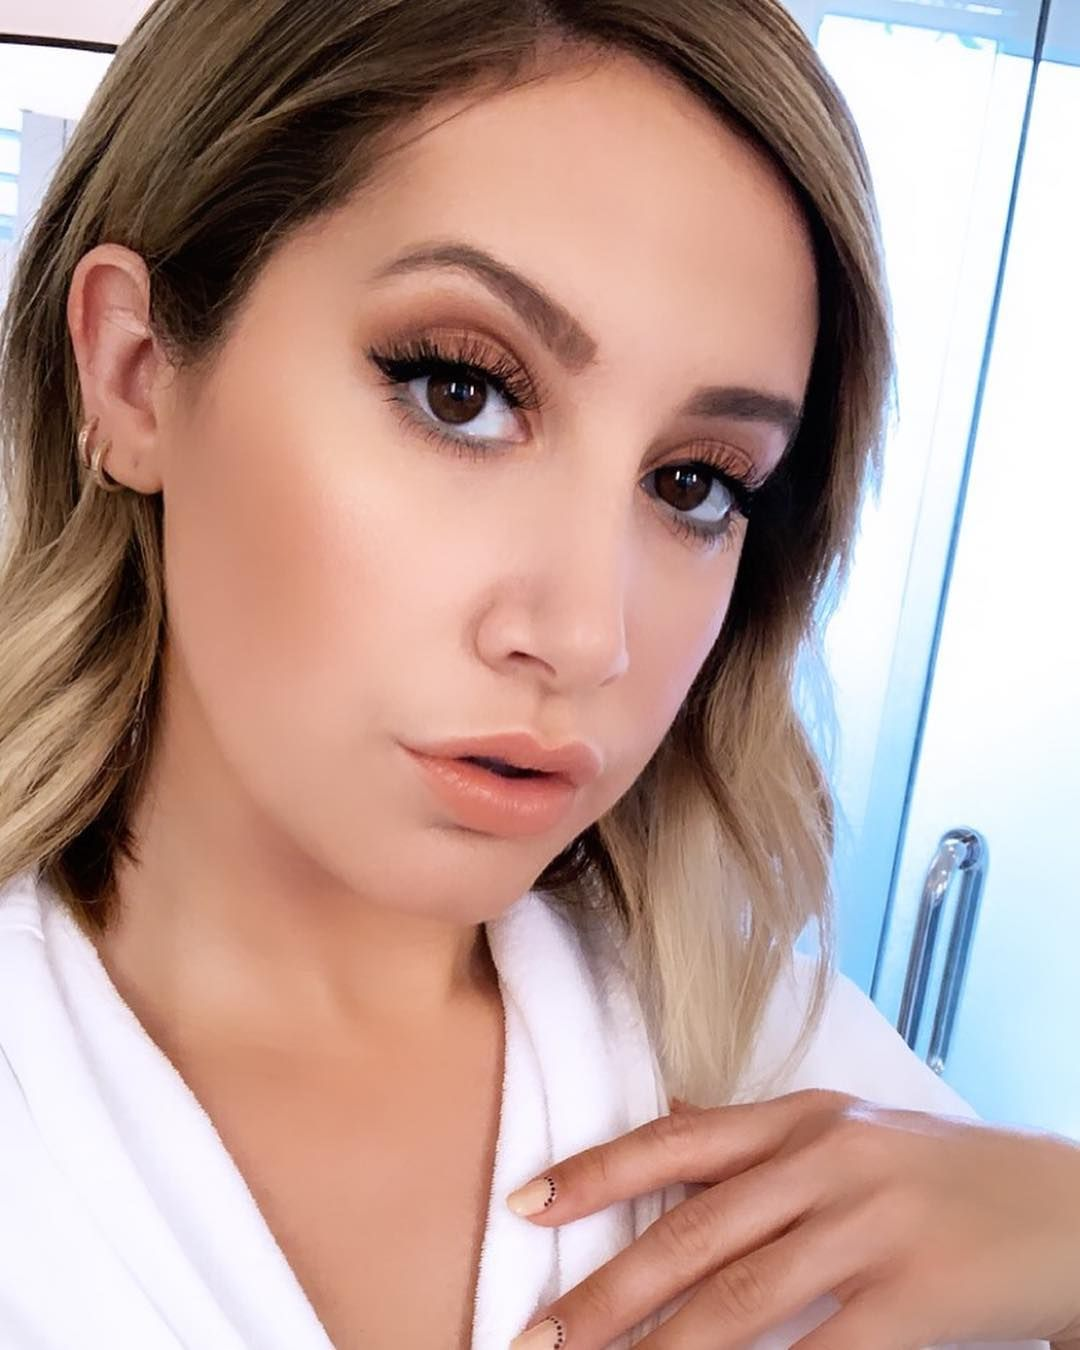 Ashley Tisdale On Instagram I Love Playing With Makeup Especially With My Make Up Illumina Ashley Tisdale Makeup Ashley Tisdale Style Elegant Hairstyles